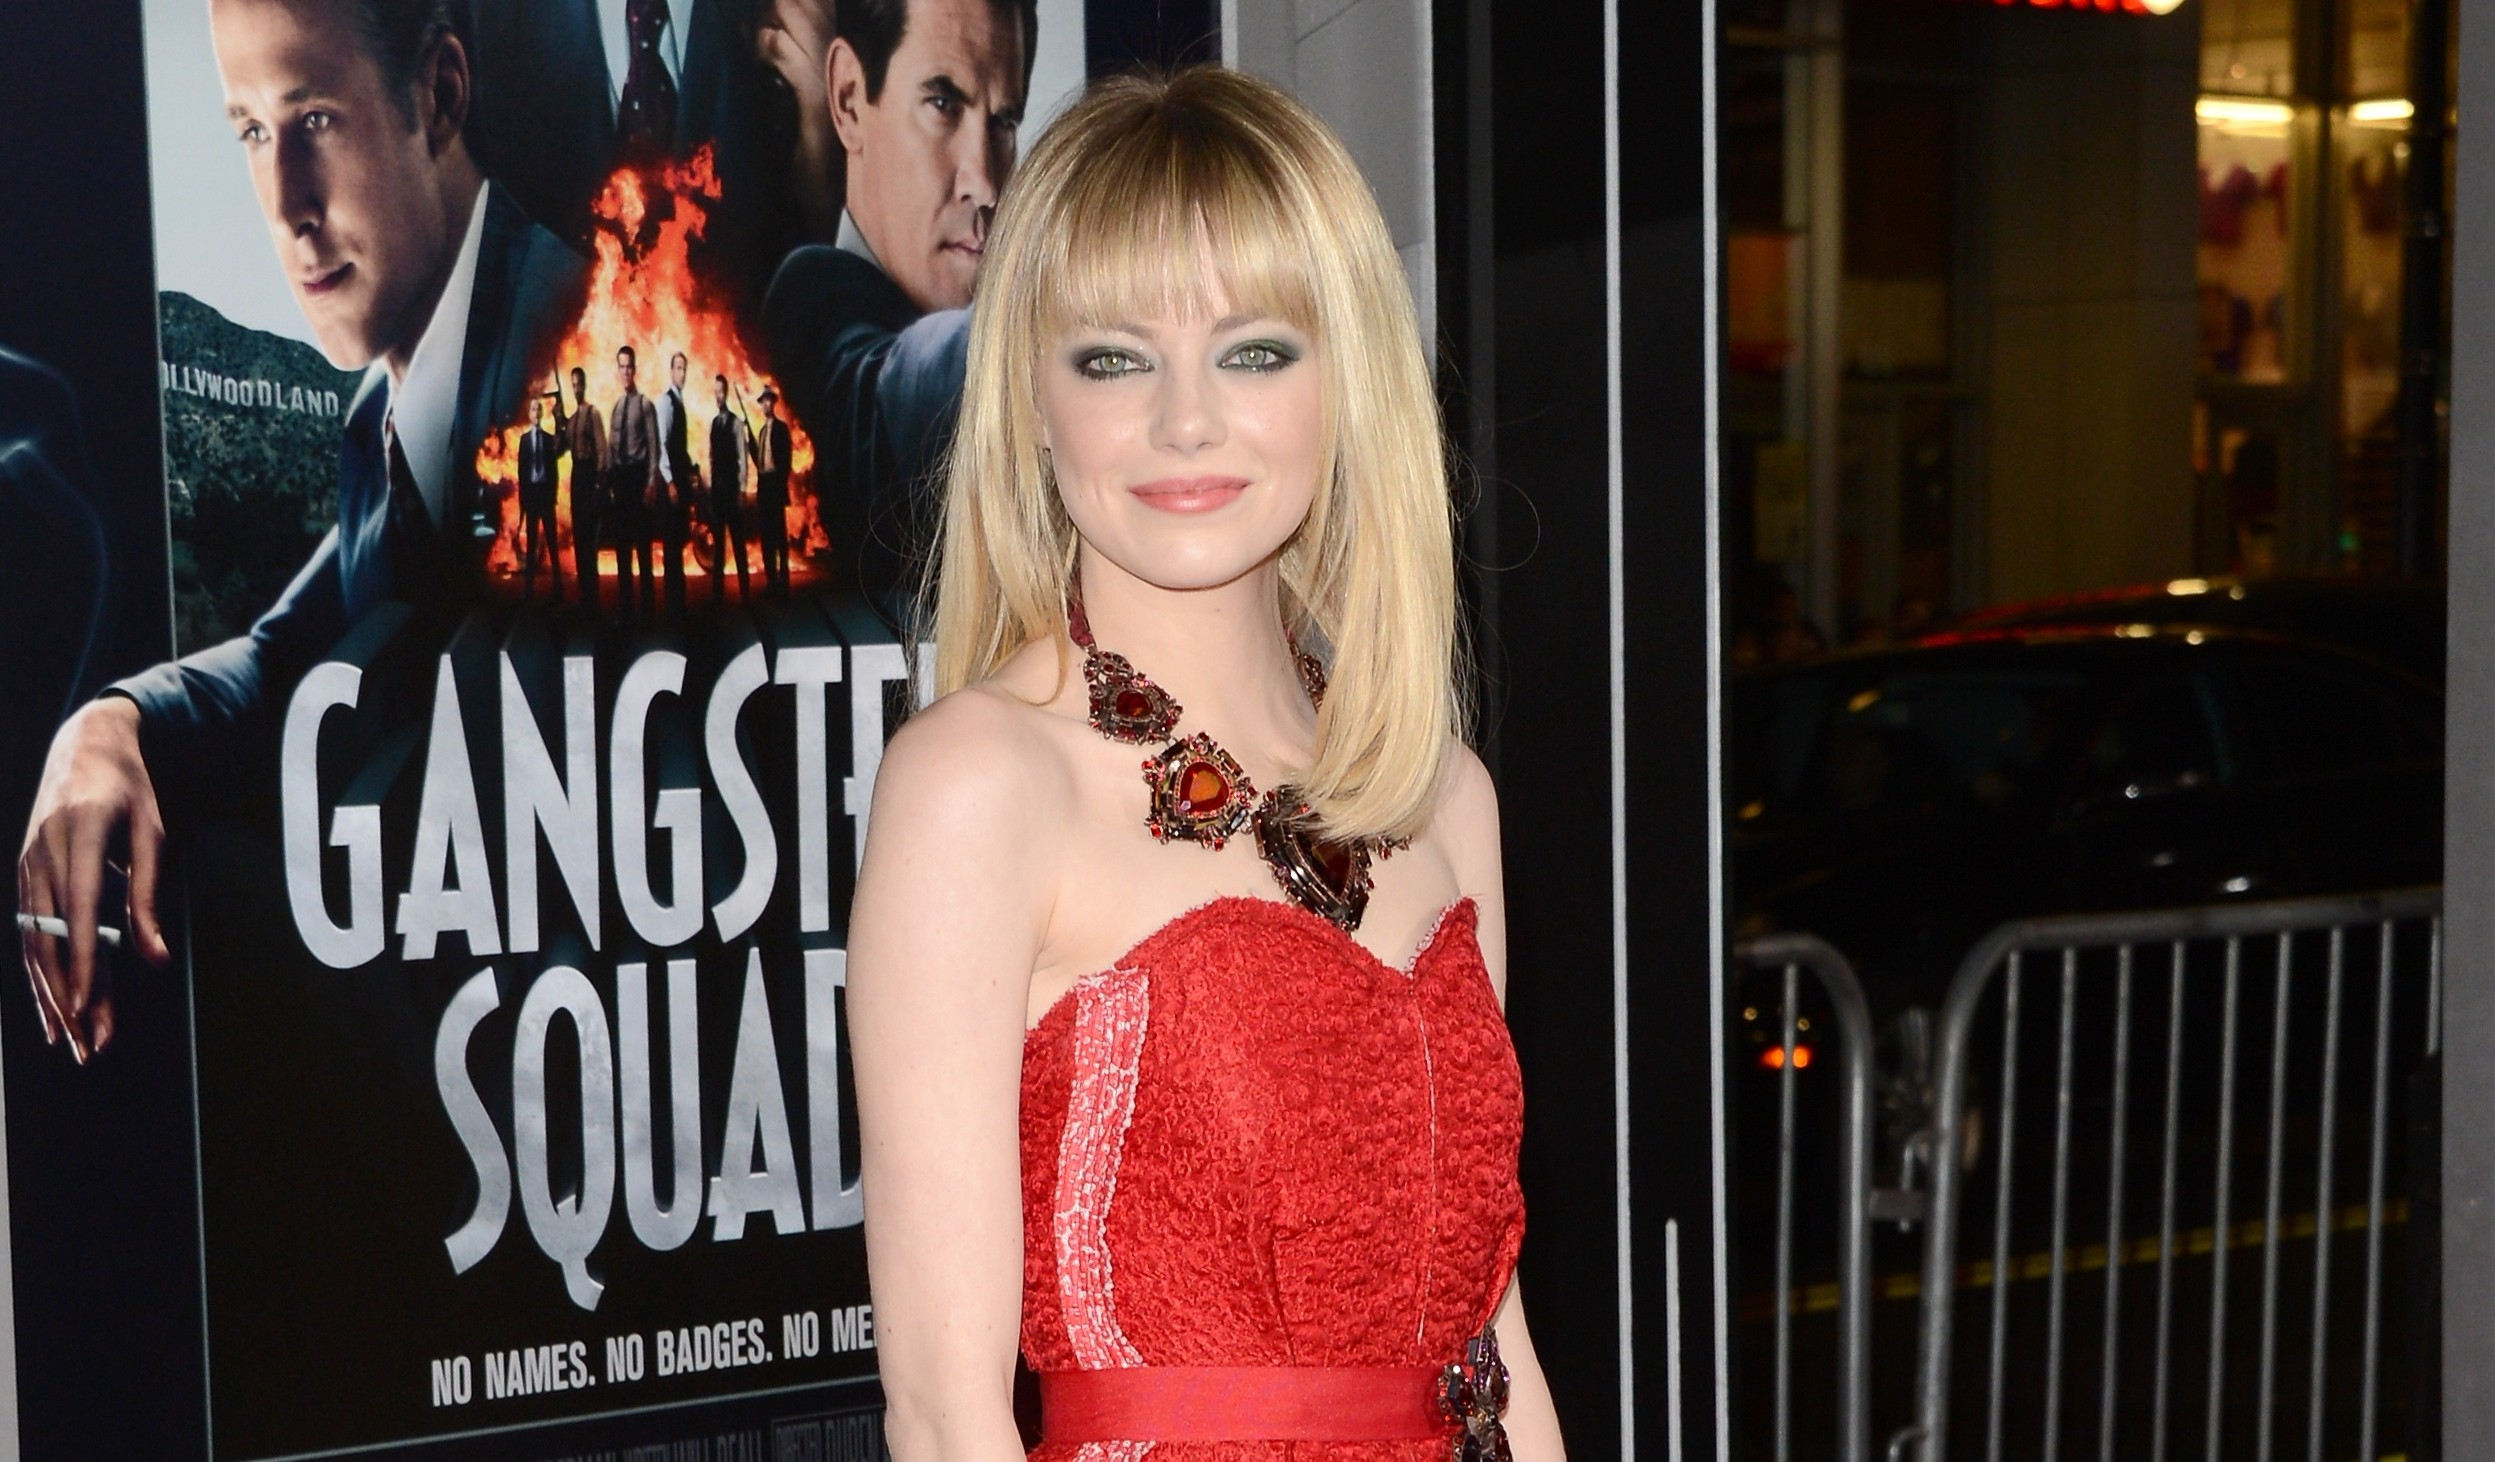 Emma Stone has been tipped to land the role of Anna in Ghostbusters 3 (Picture: Getty Images)